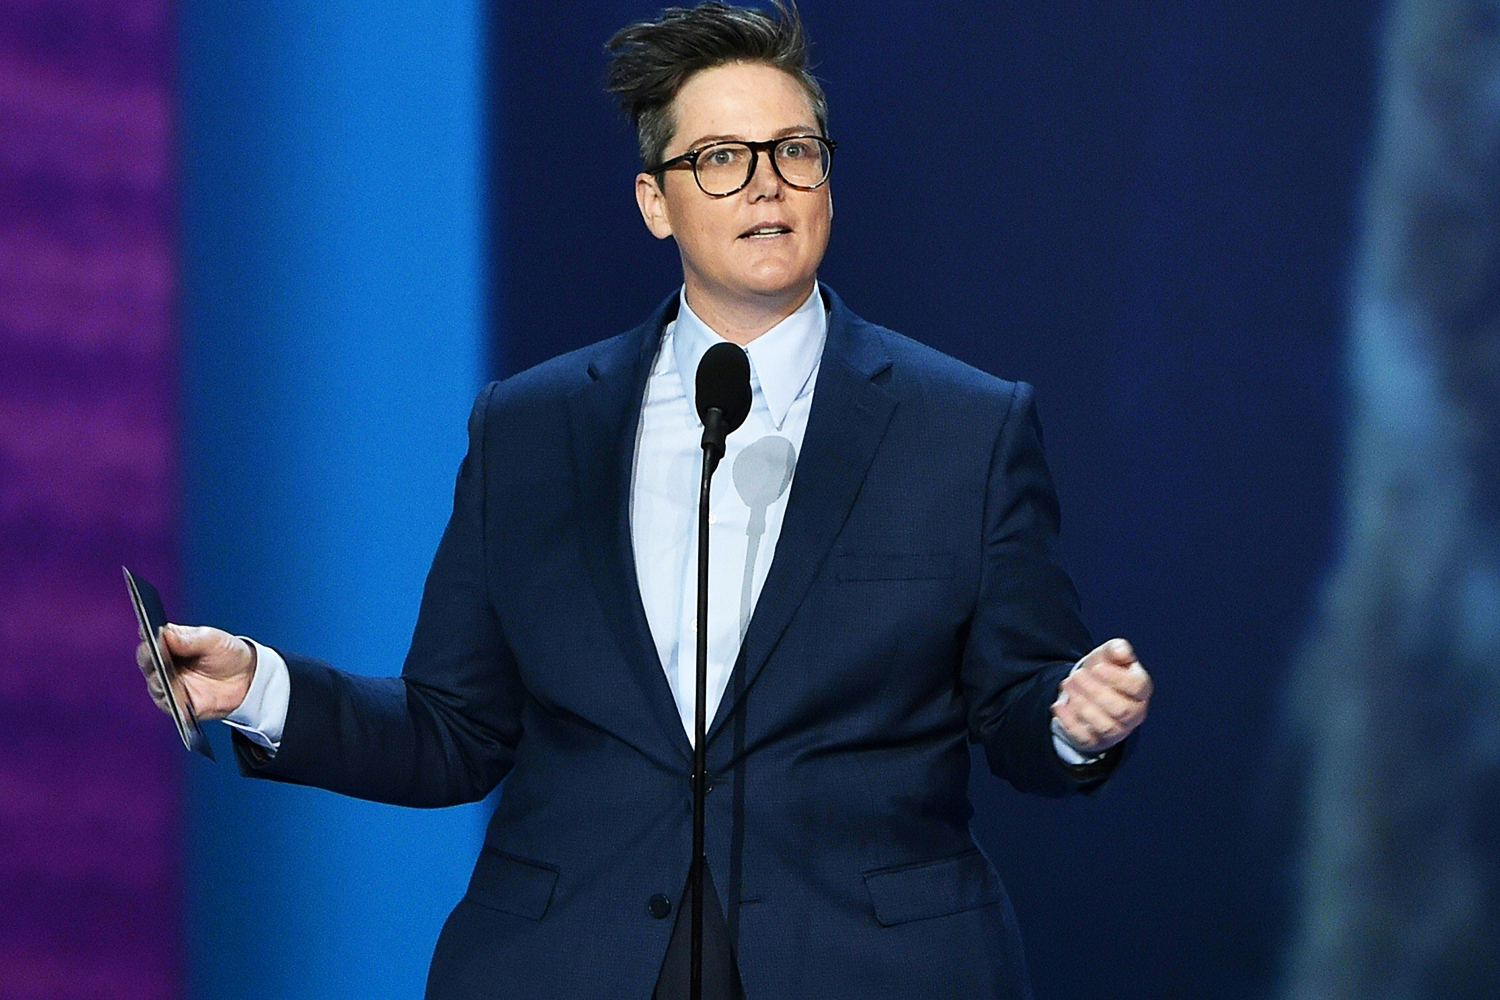 Hannah Gadsby Just Won The Emmys With This Hilarious Skit